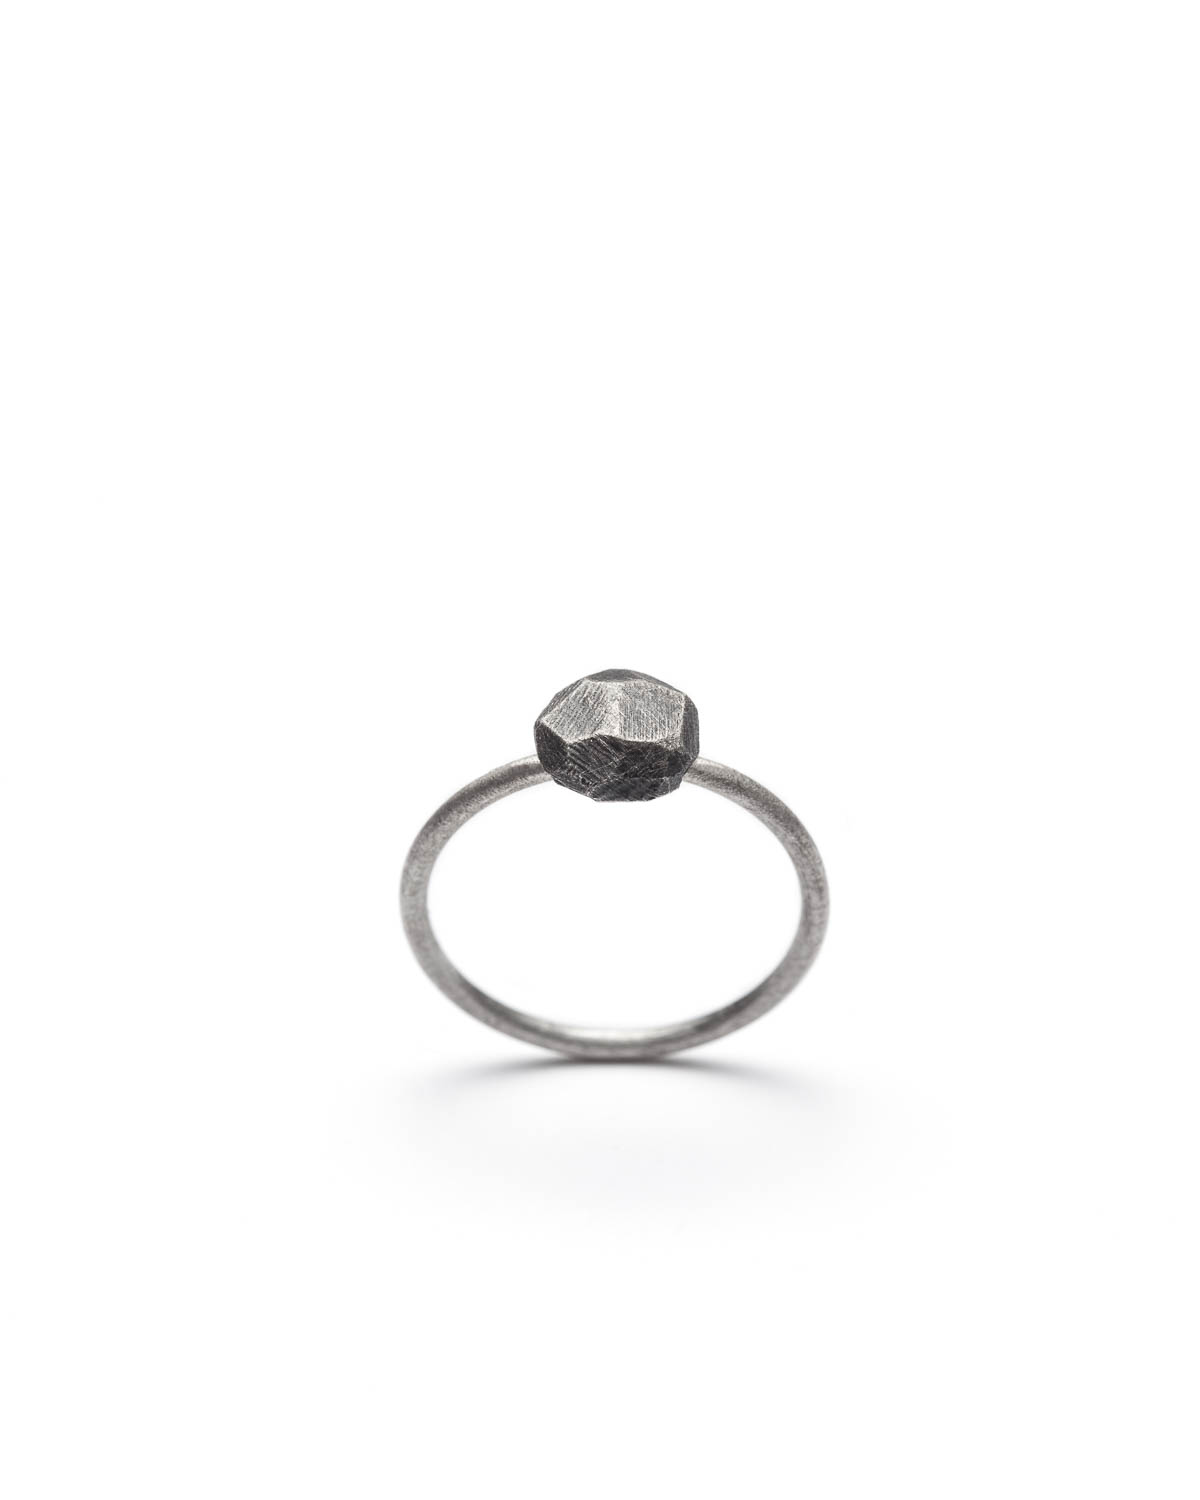 minimalist oxidized silver ring from Texture line